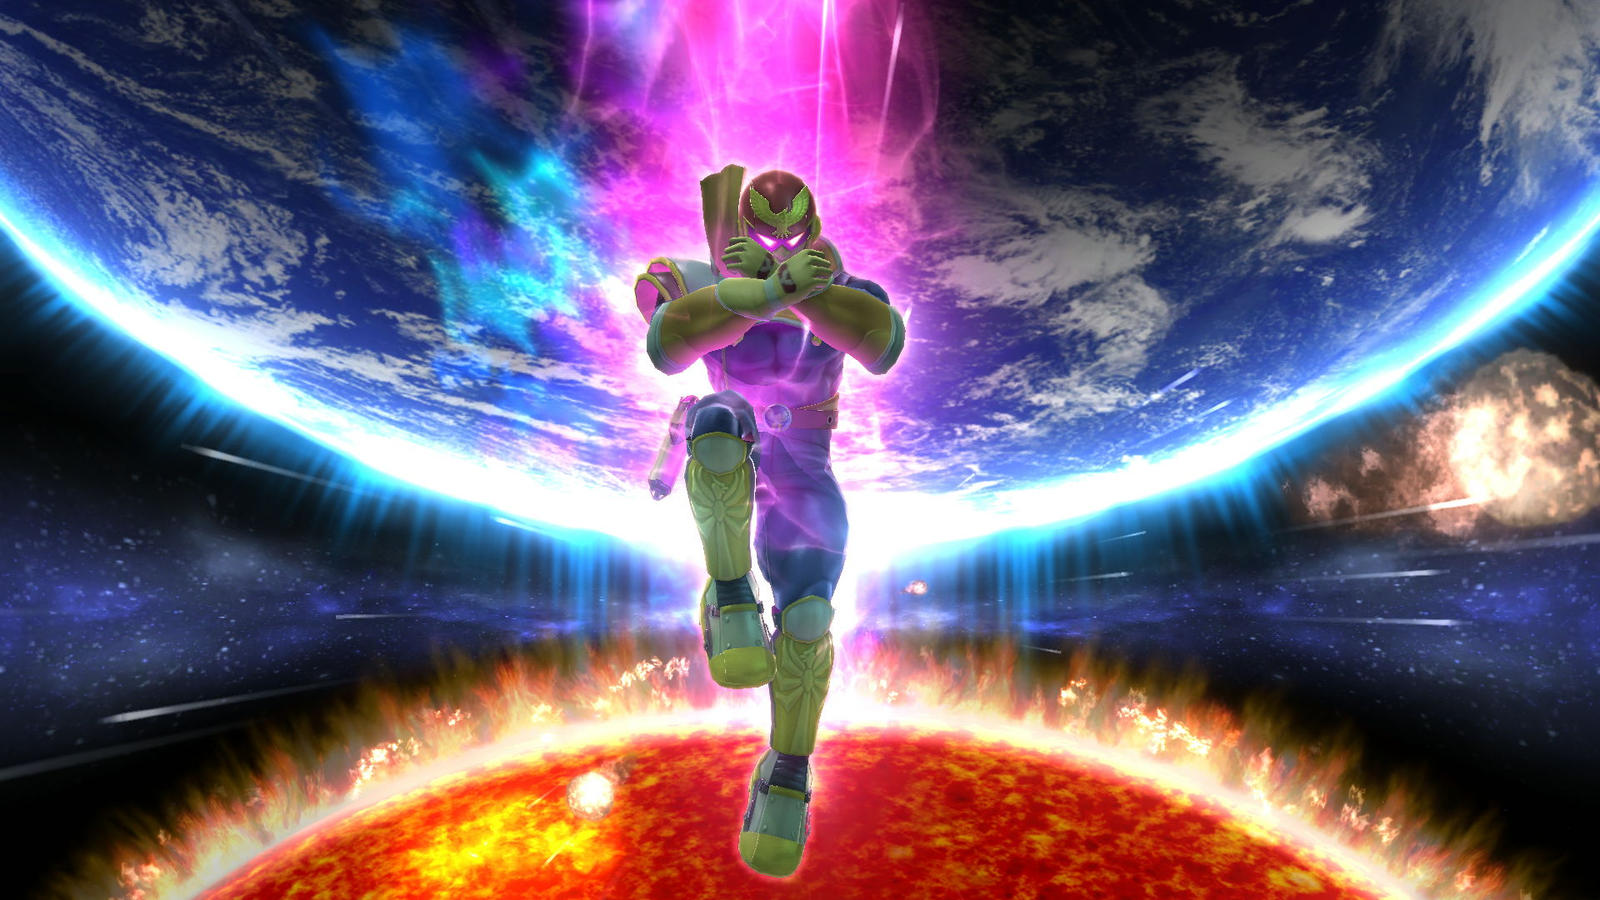 ssb wii u screenshot:captain falcon awesomness!big-mgs-fan117